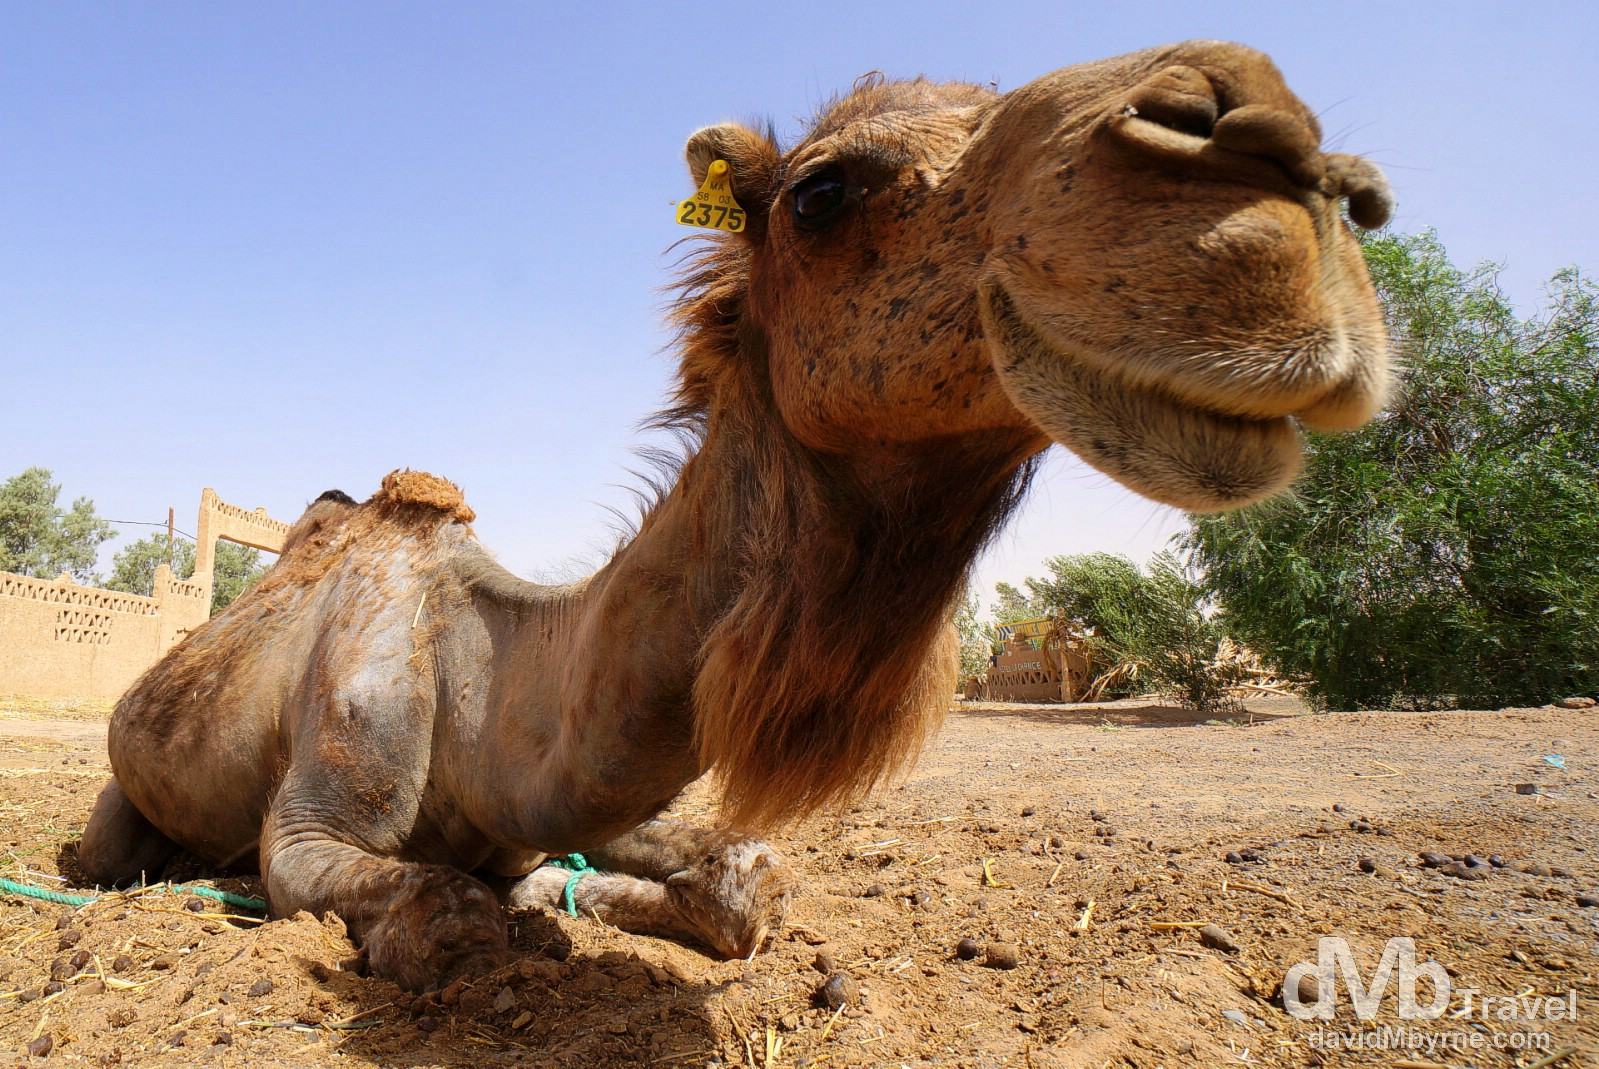 A camel in the grounds of Hotel Haven la Chance, Merzouga, Morocco. May 22nd, 2014.